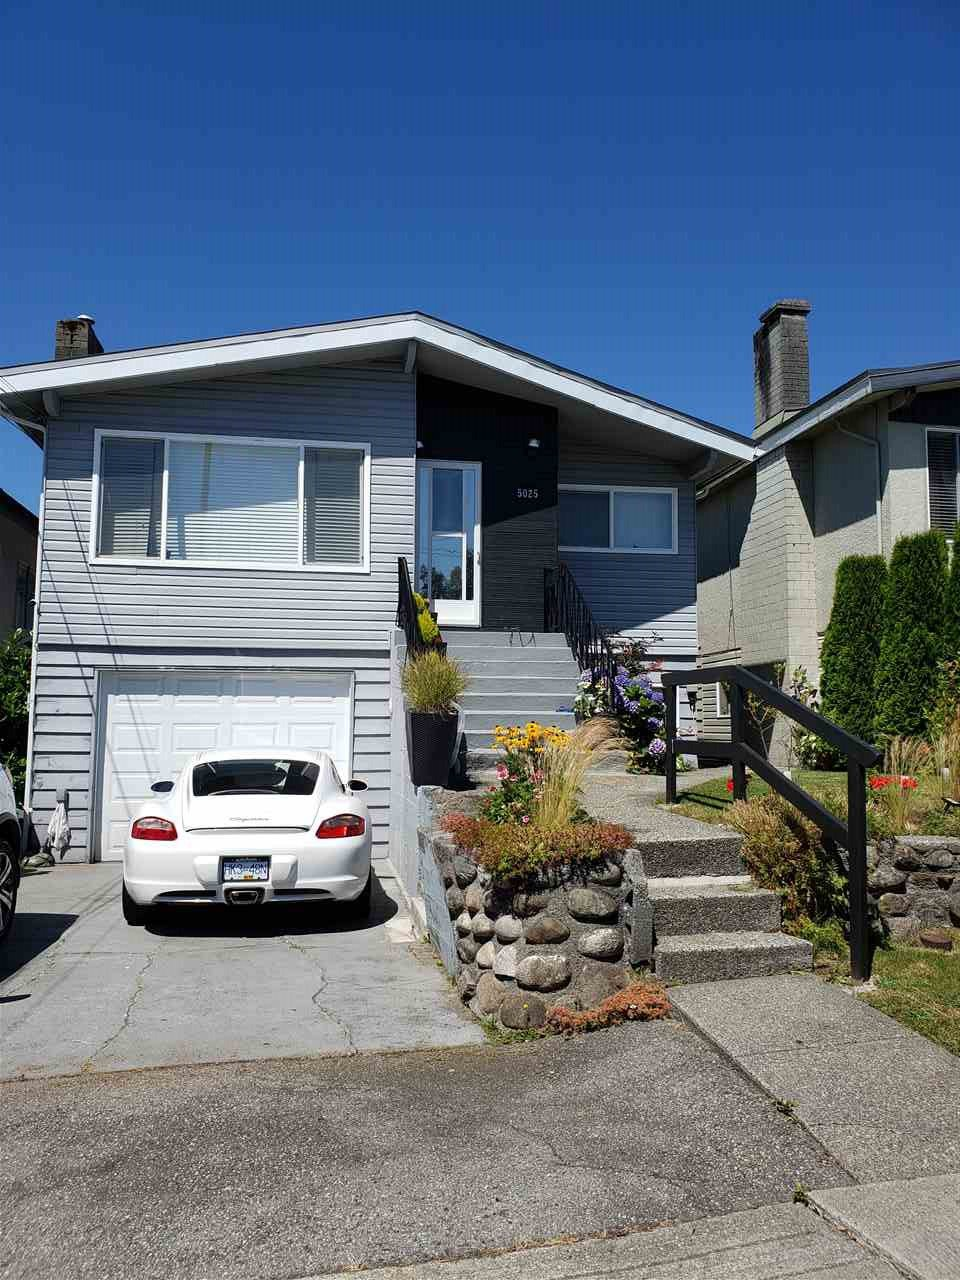 Main Photo: 5025 ANN Street in Vancouver: Collingwood VE House for sale (Vancouver East)  : MLS®# R2494691